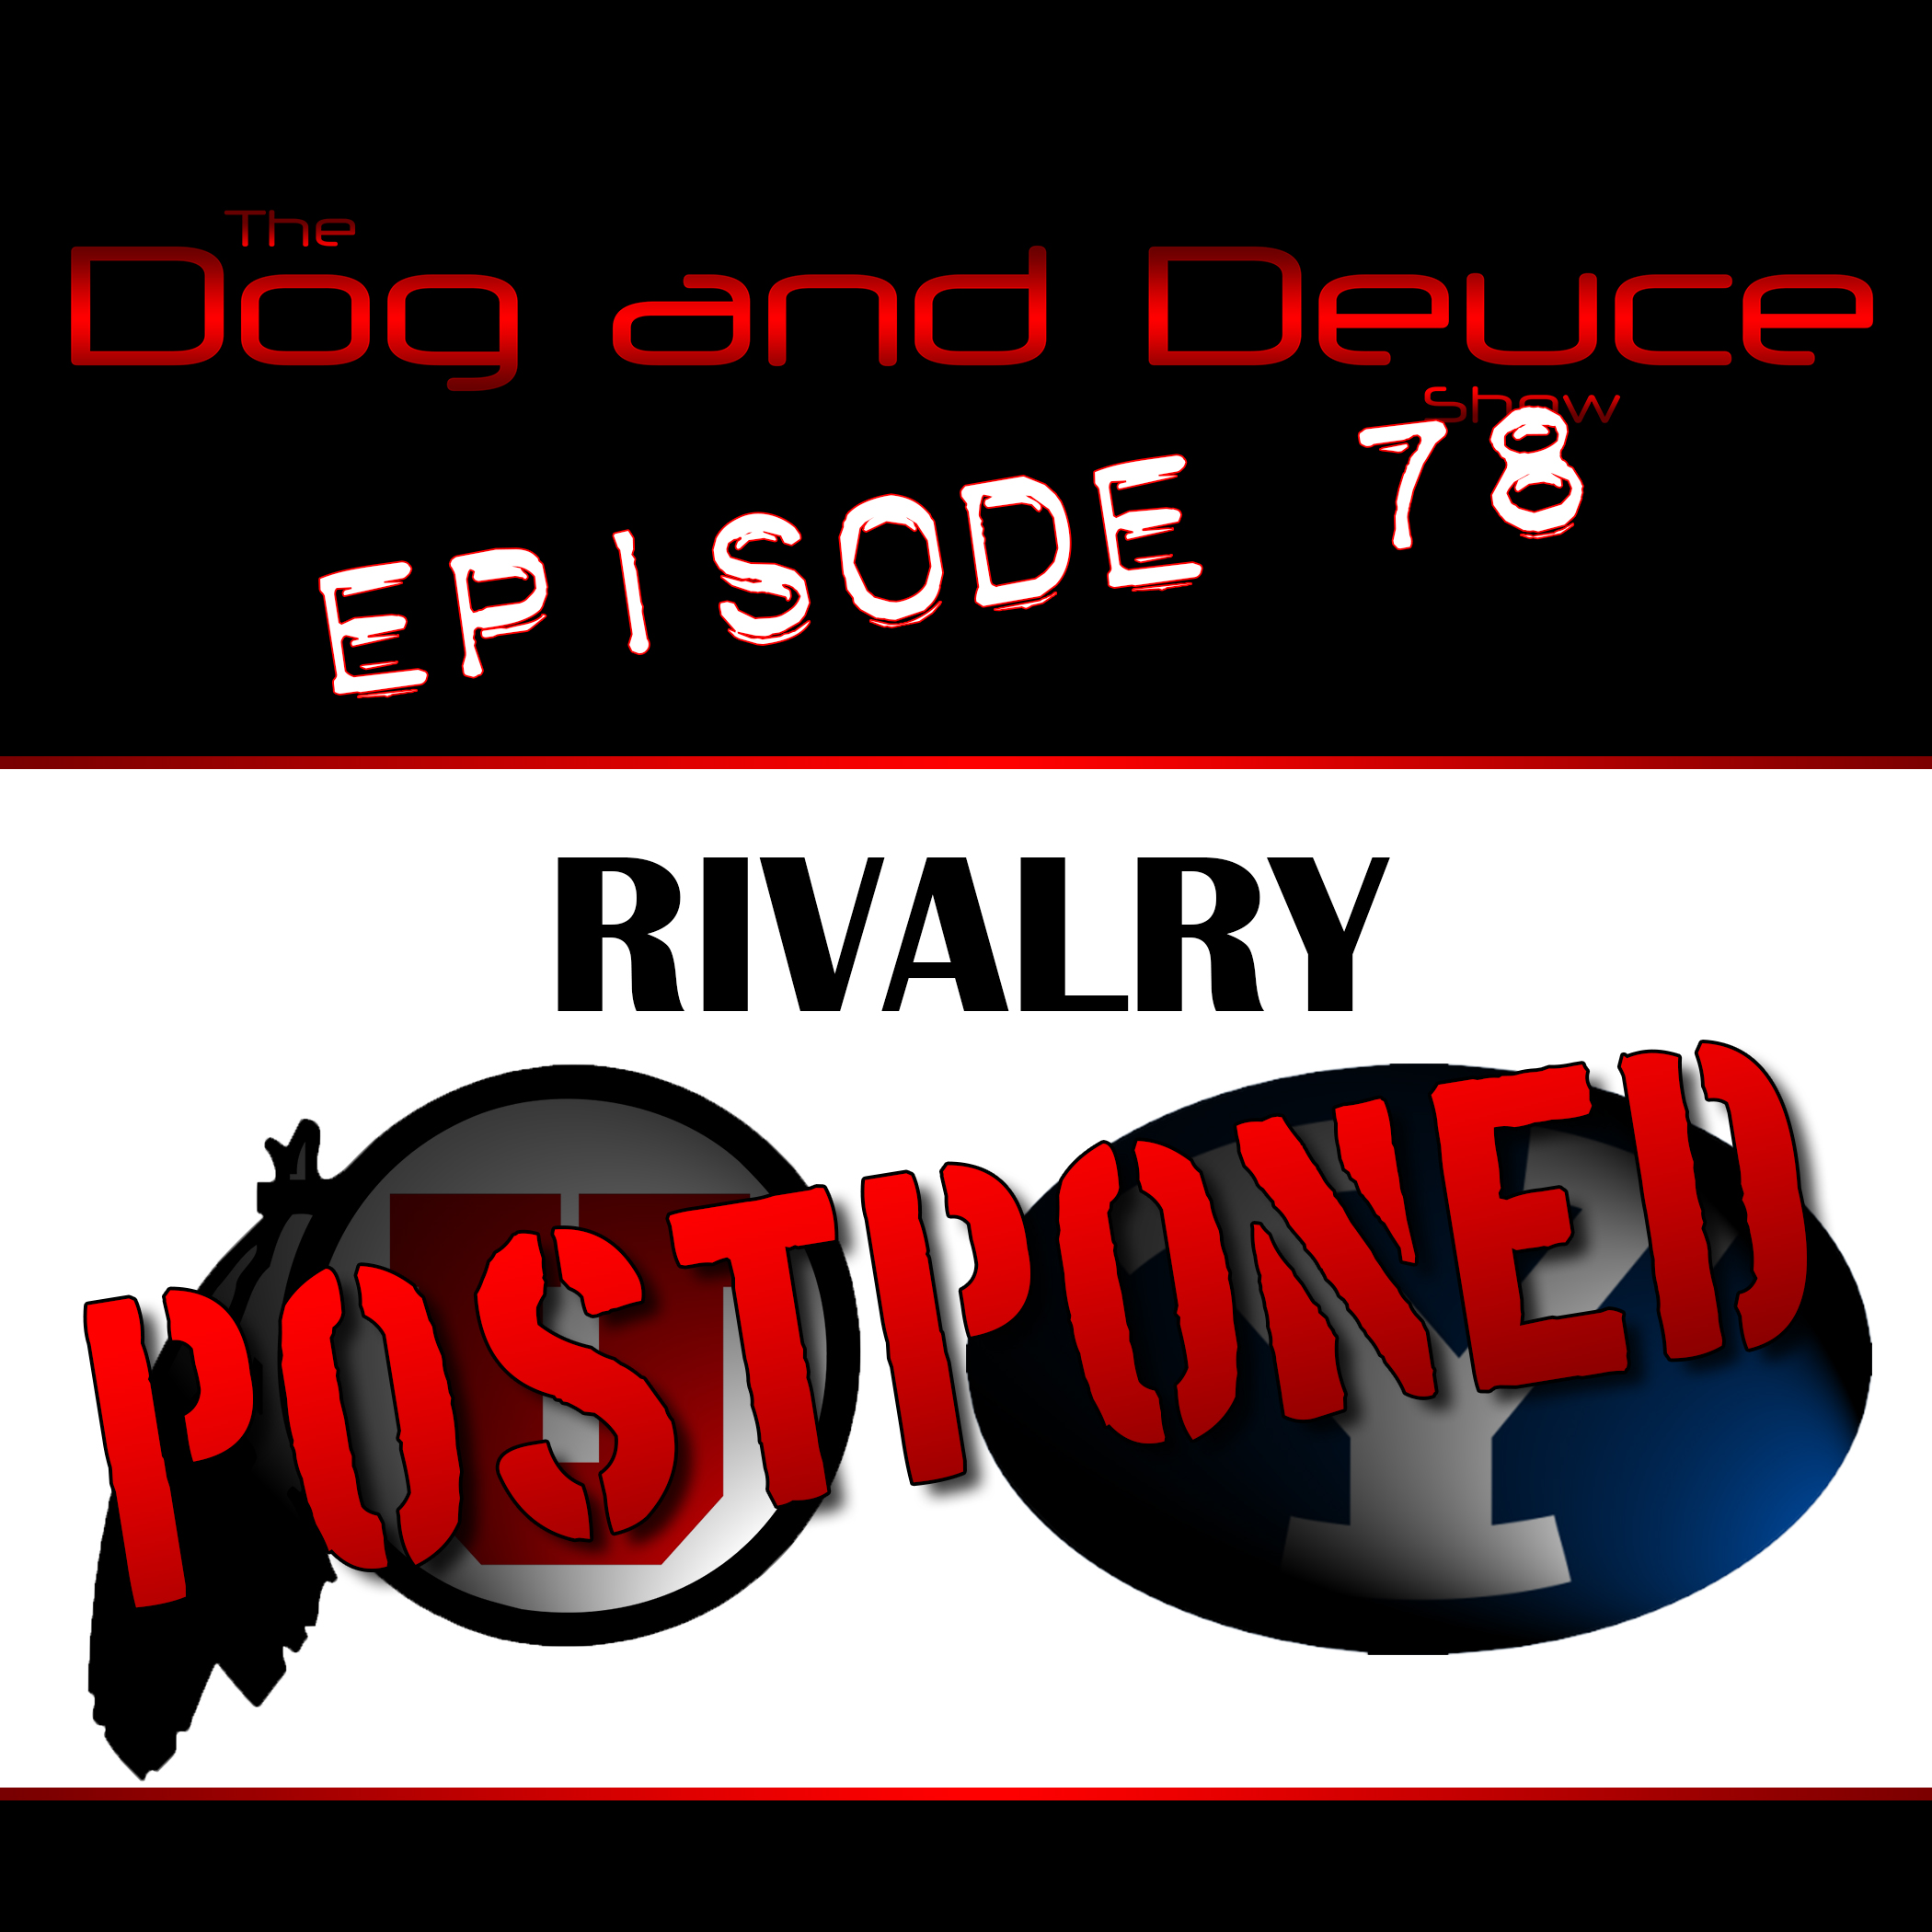 Utah BYU Rivalry Put On Hiatus, NBA Offseason Trades & Signings – Dog and Deuce #78